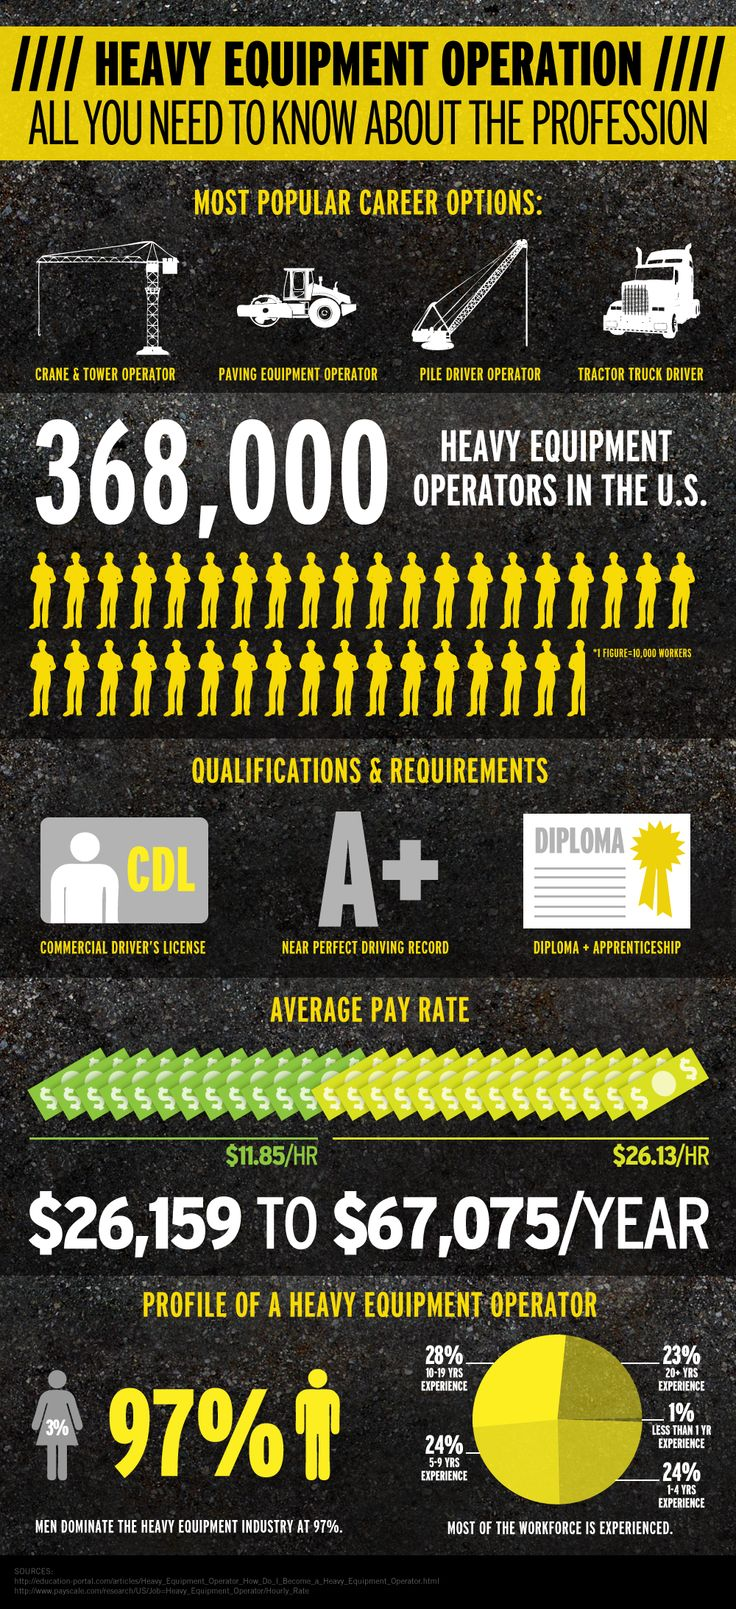 Heavy Equipment Operation Infographic. For Levi. I say they have thier pay scale wrong tho